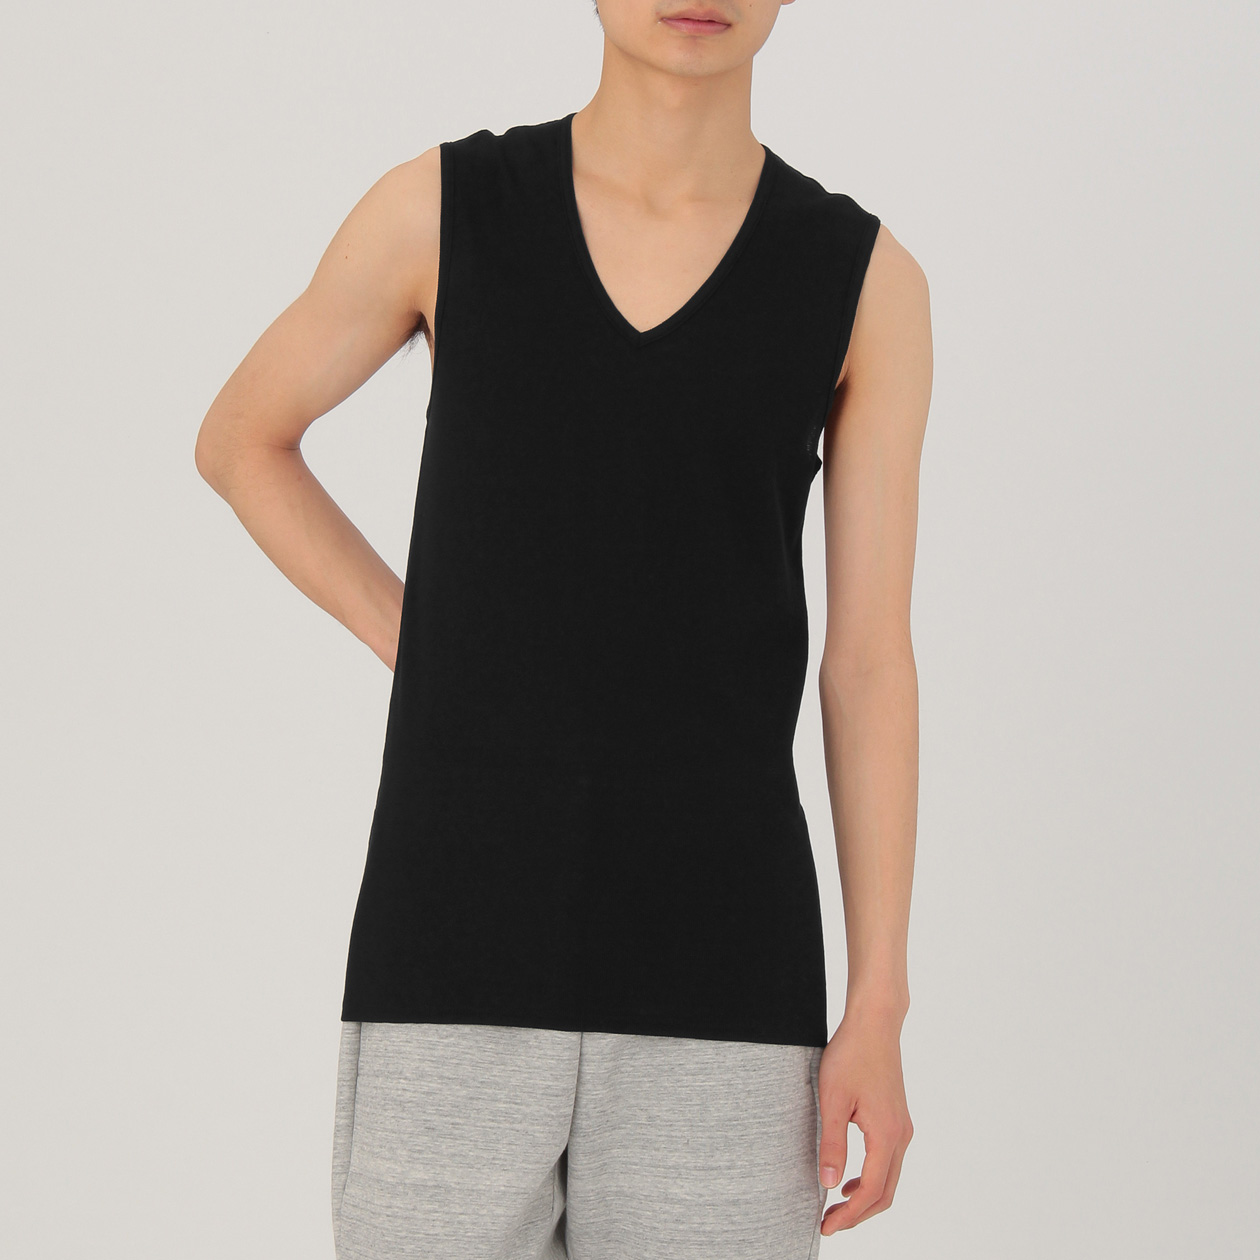 78344604faa SMOOTH COOL TOUCH MESH V NECK SLEEVELESS MEN L BLACK | MUJI